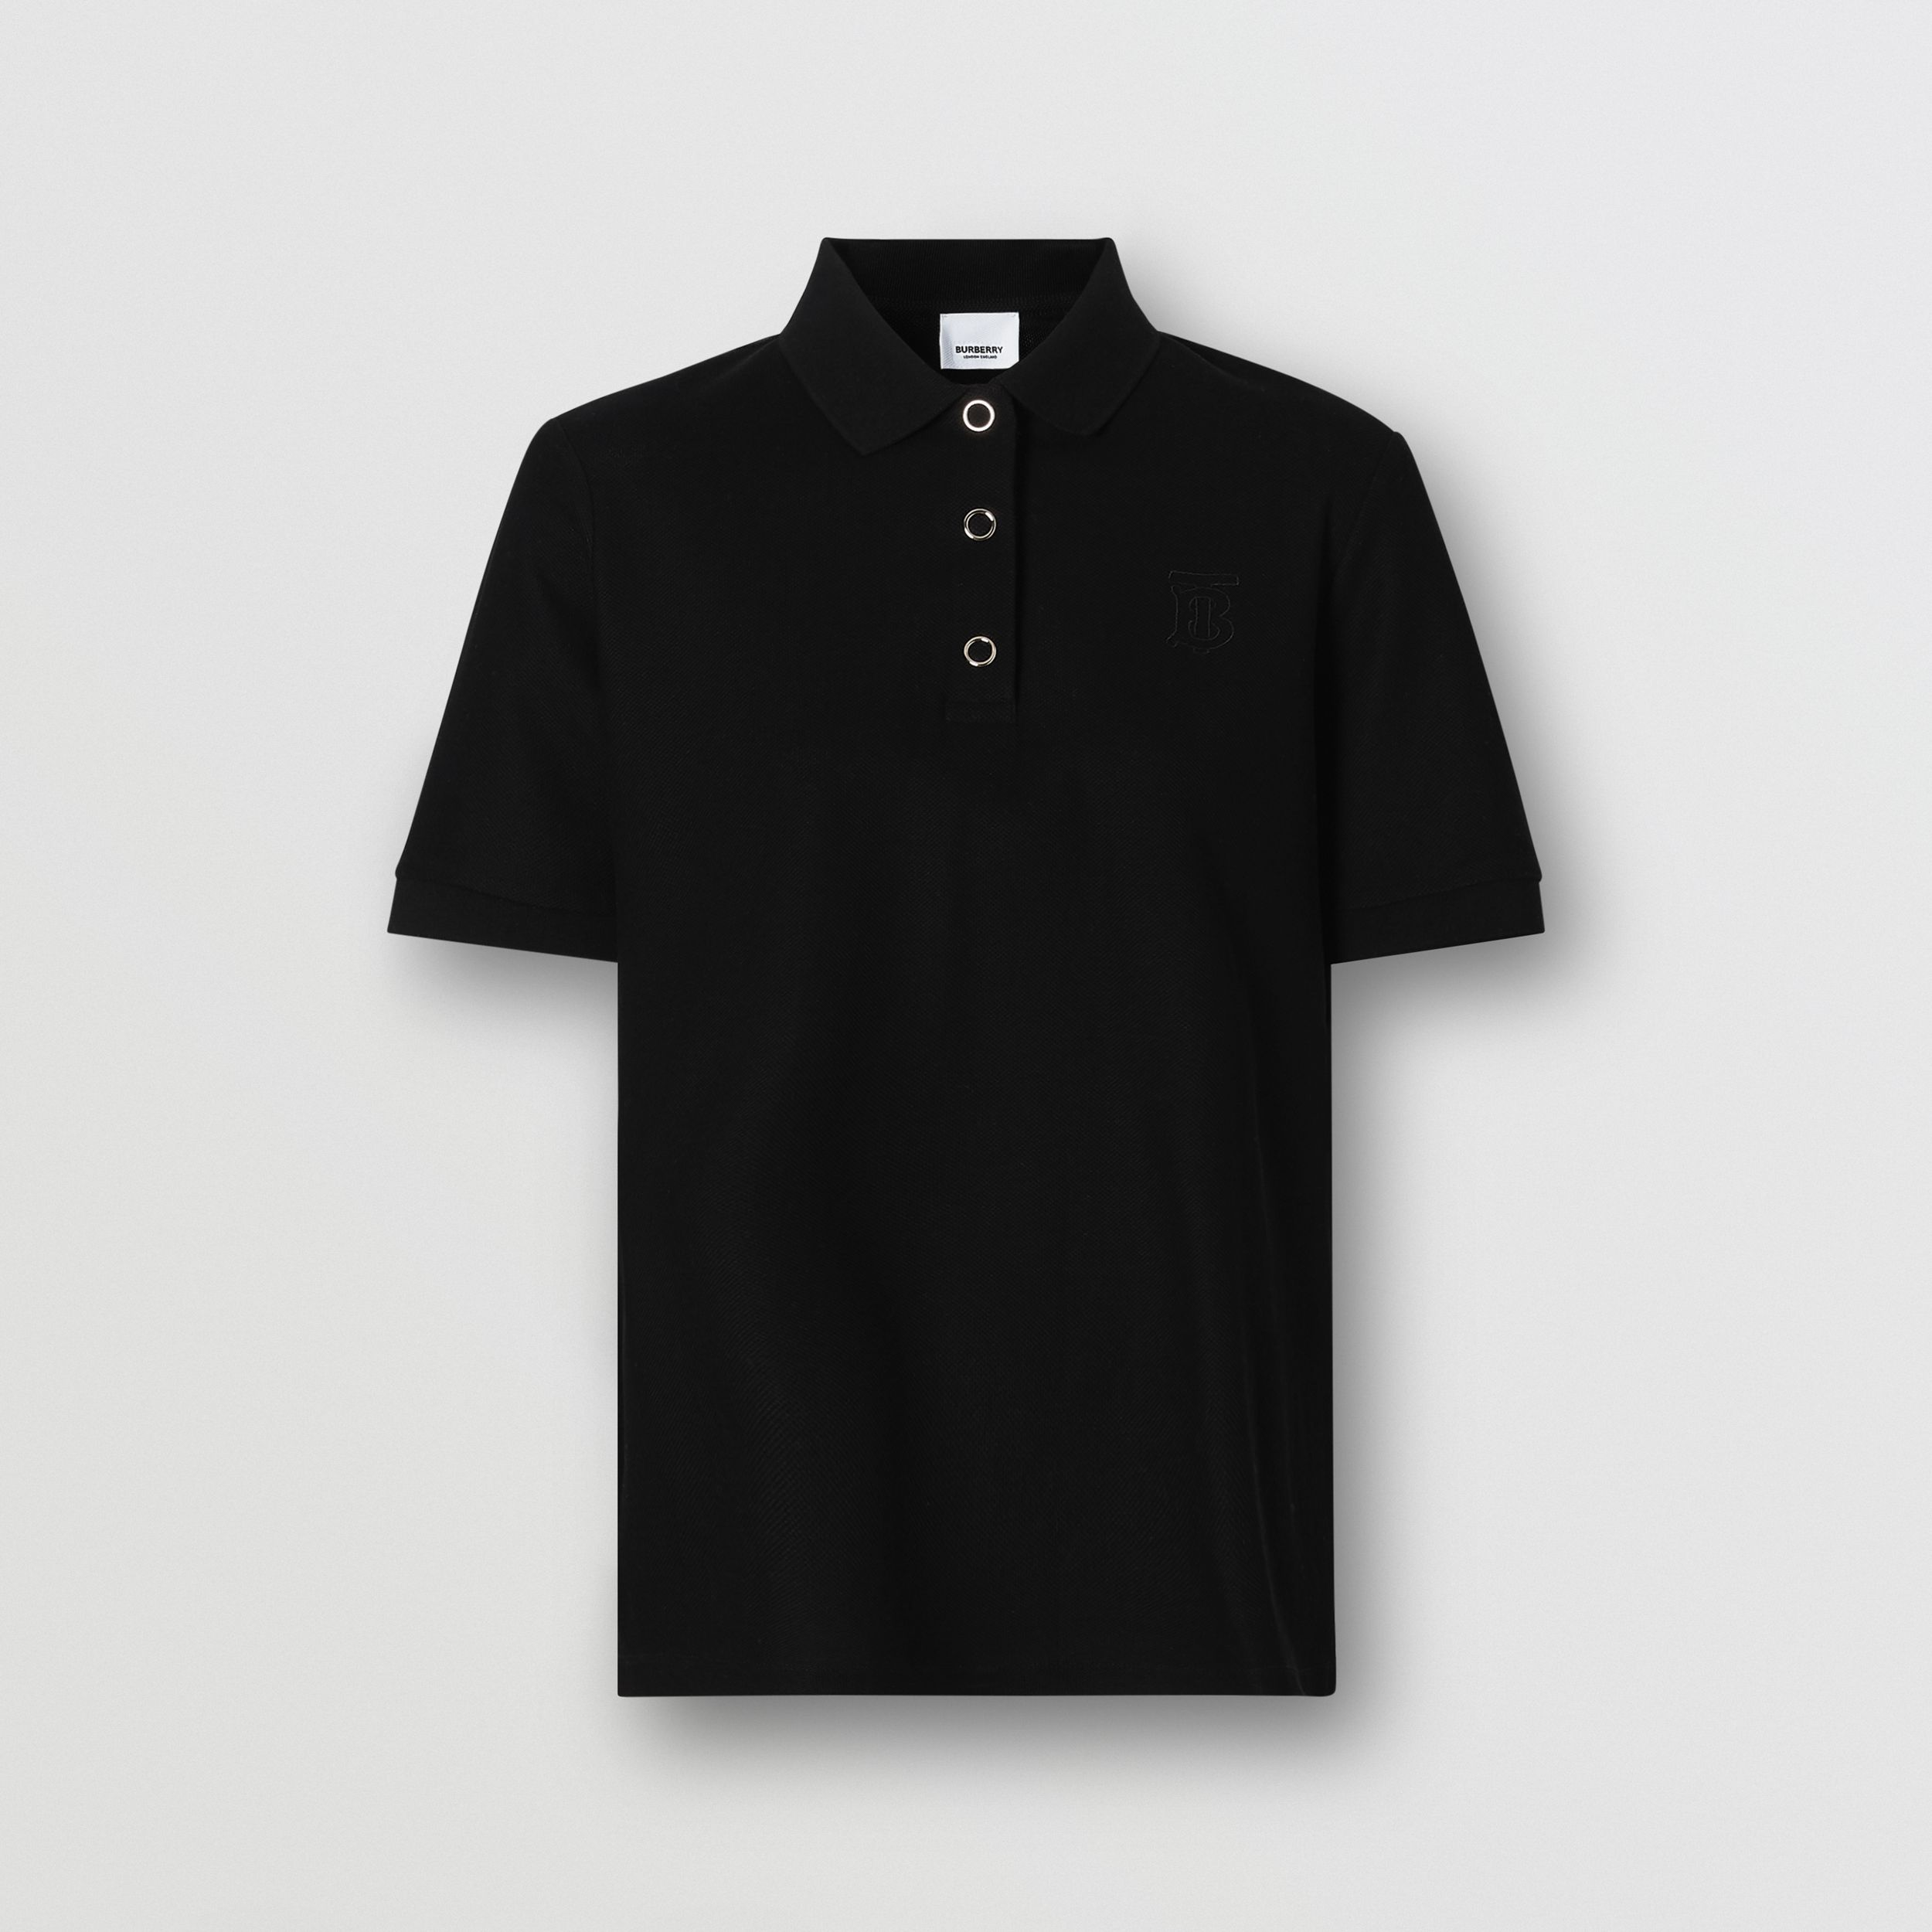 Monogram Motif Cotton Piqué Polo Shirt in Black - Women | Burberry Singapore - 4